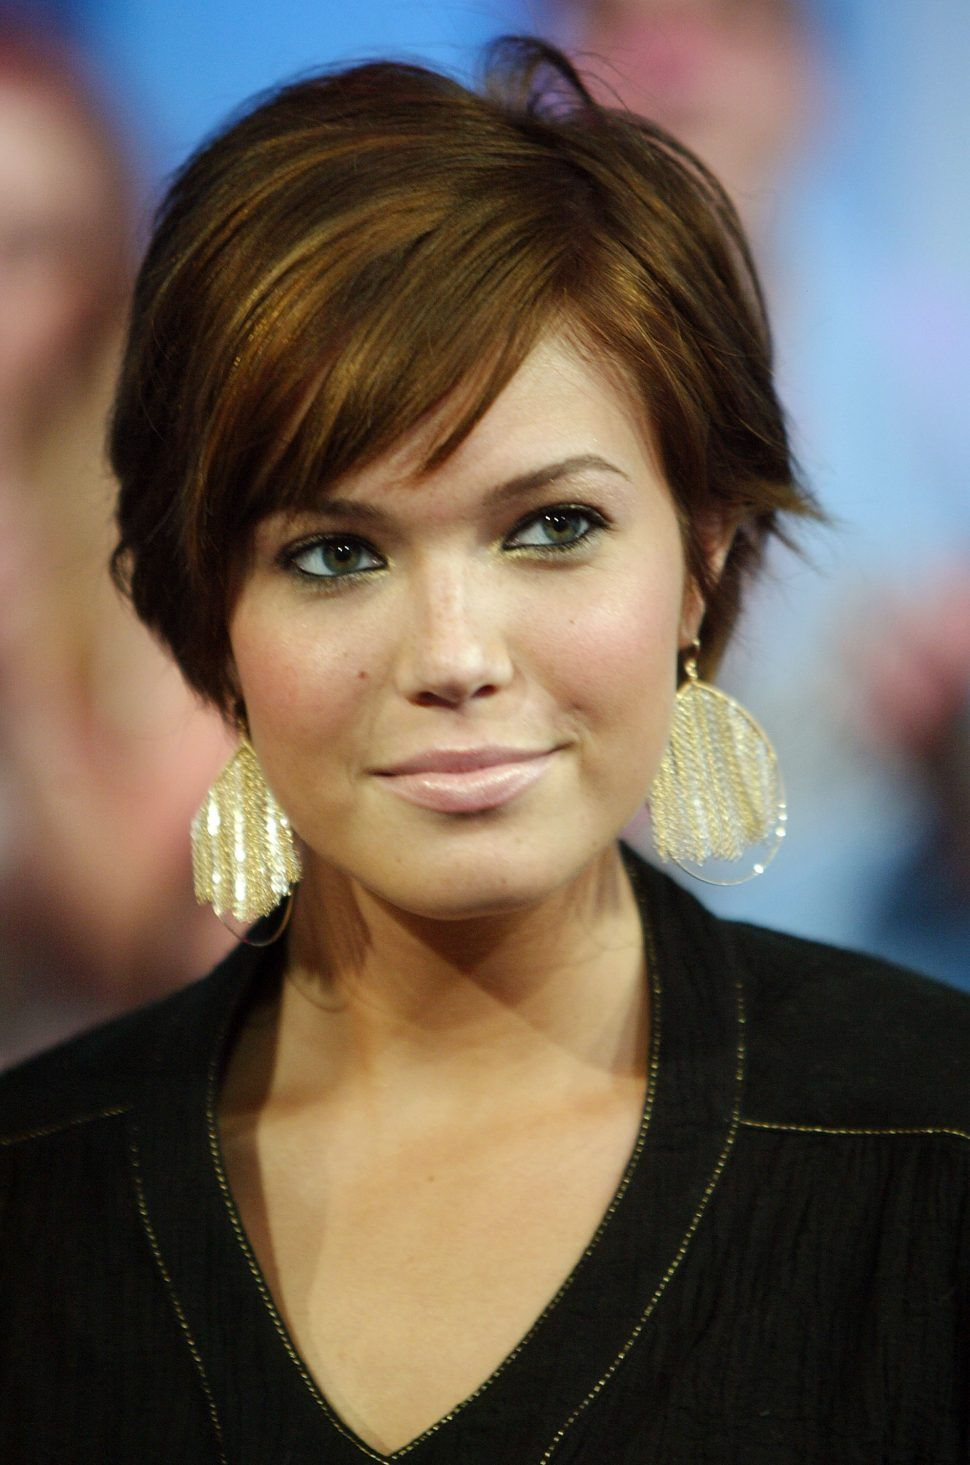 Womenus hairstyles modern short hairstyles for thin hair and round